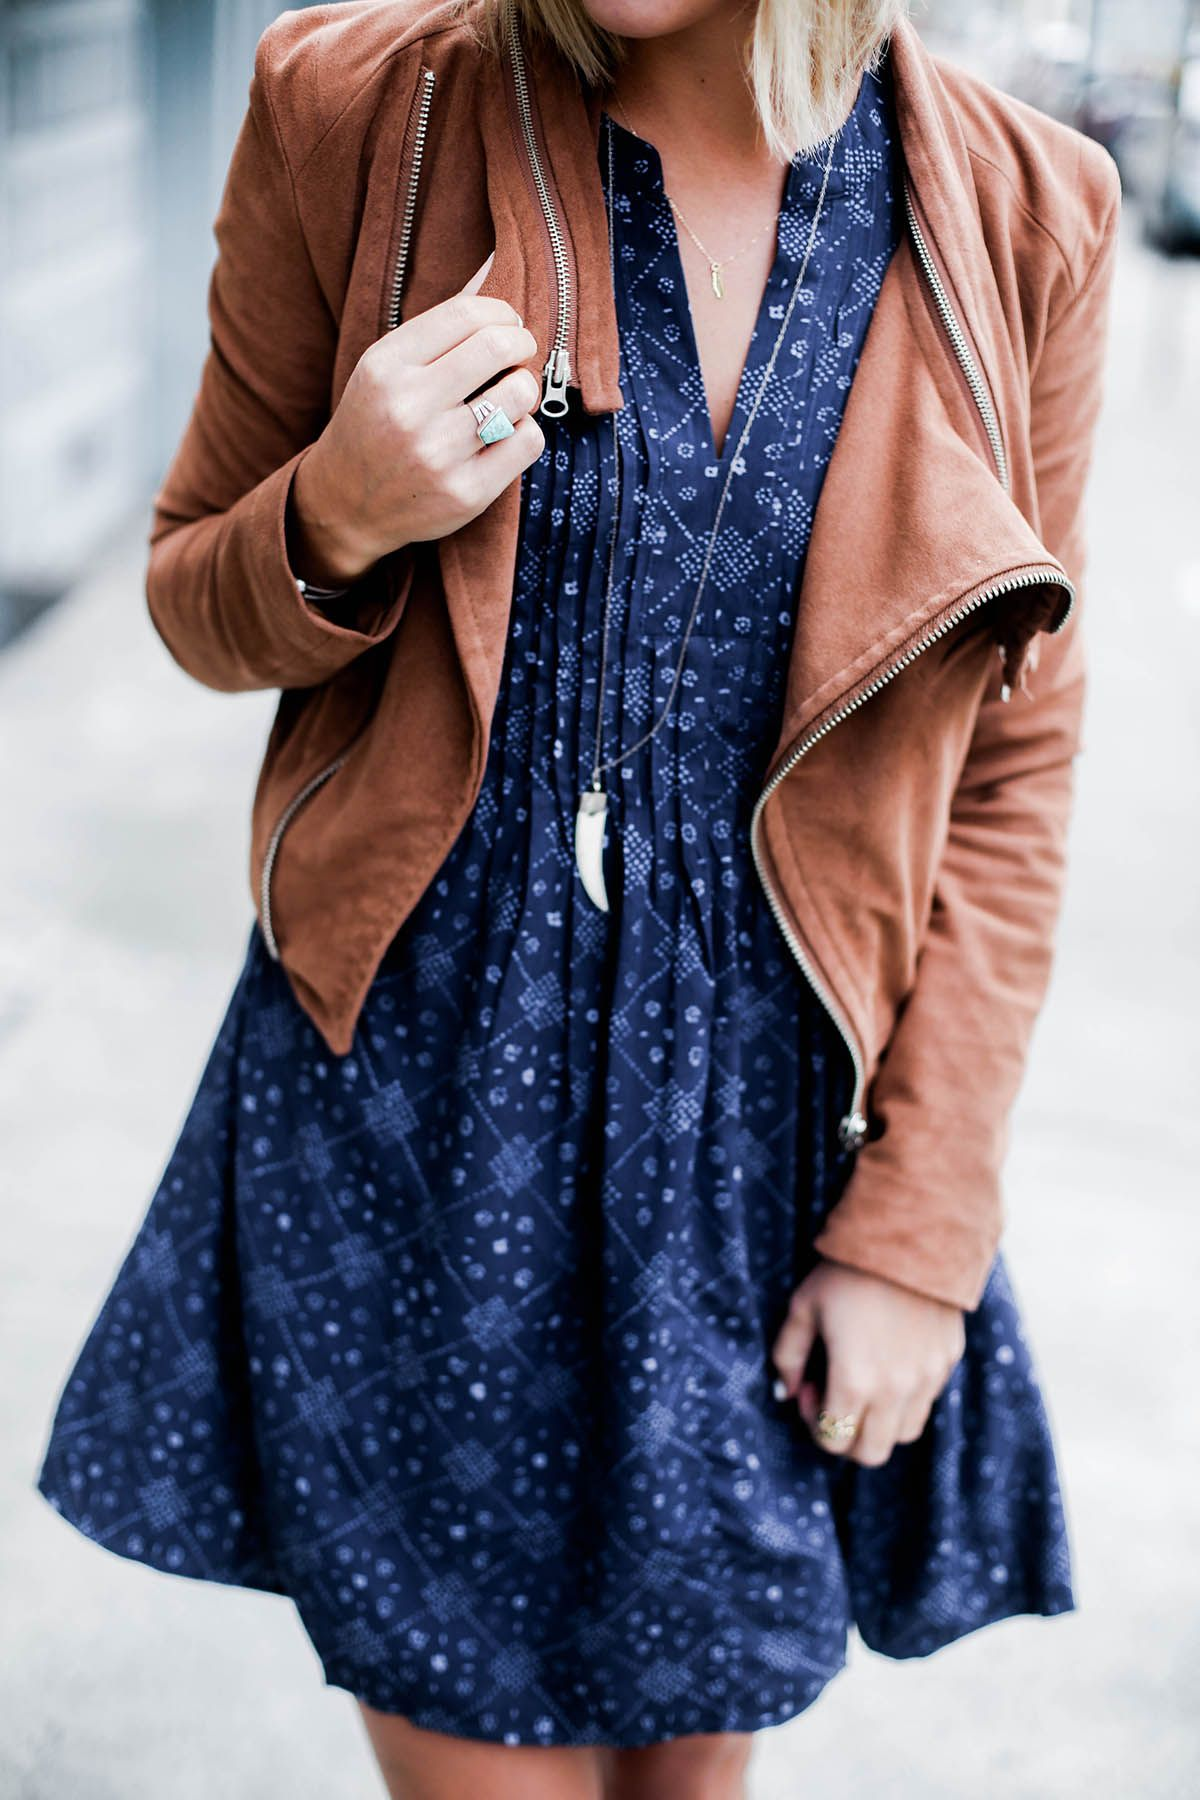 San Francisco outfit, women's fashion, casual style in Old ...